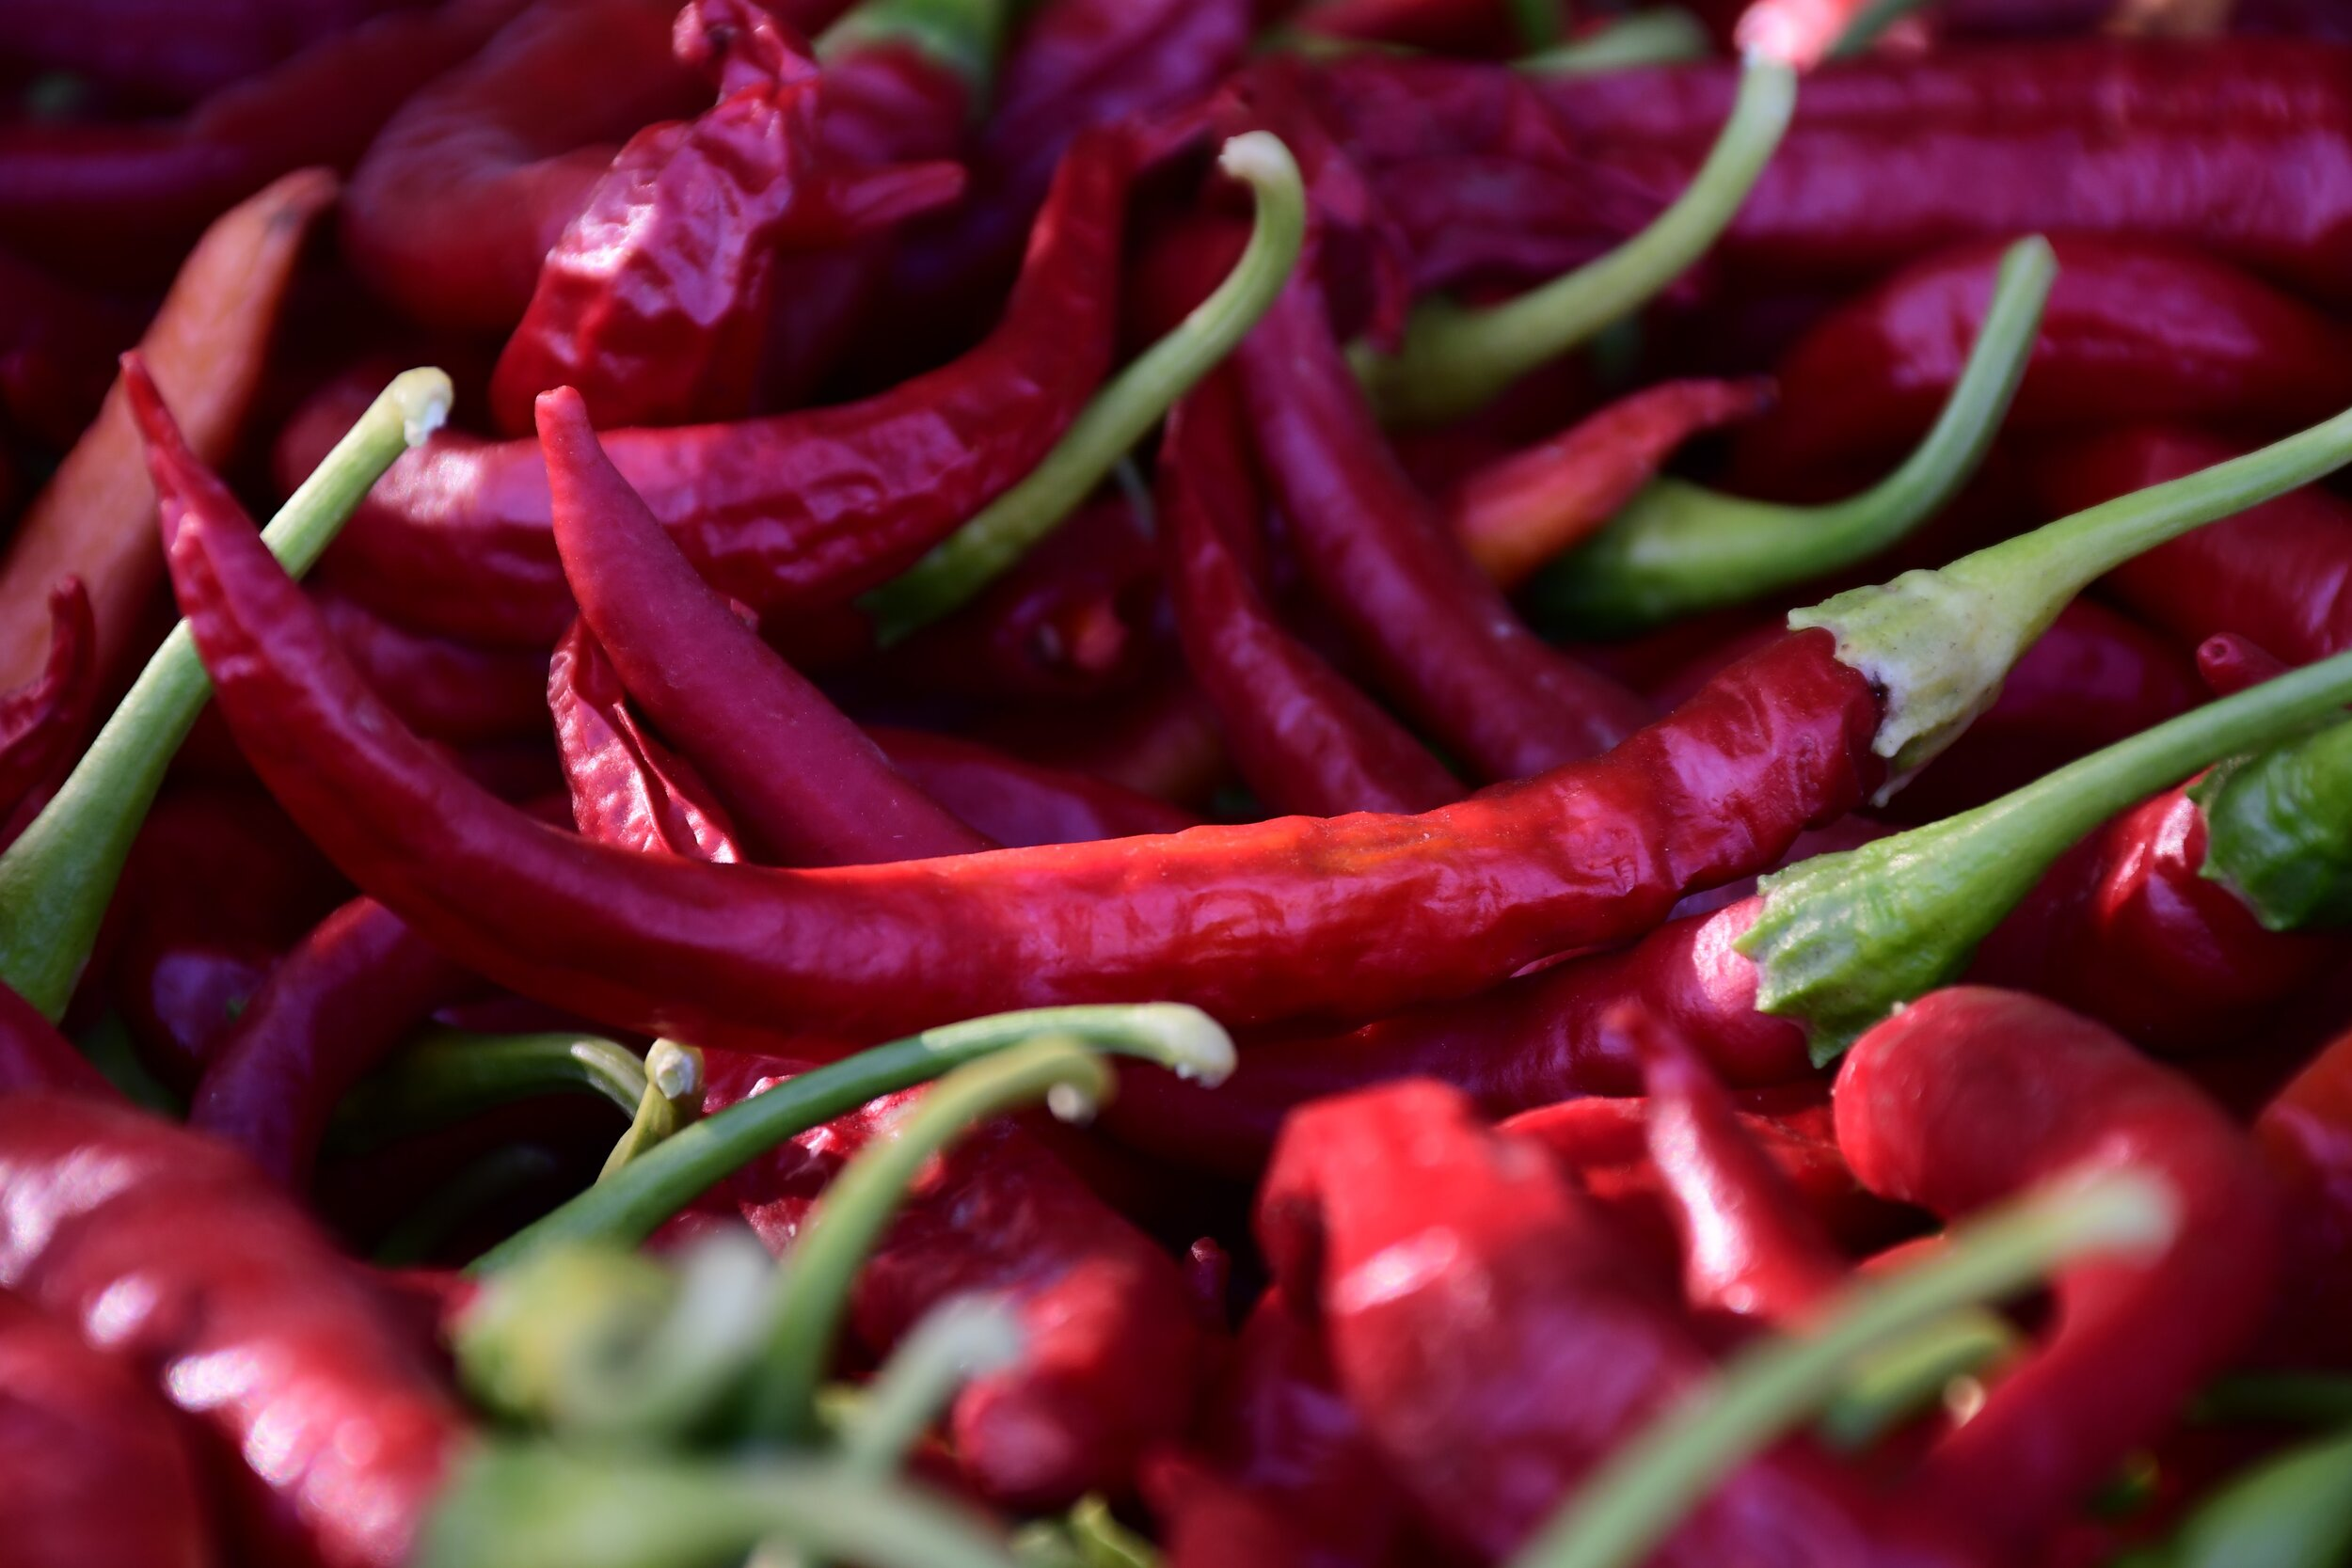 Chiles harvested for drying.